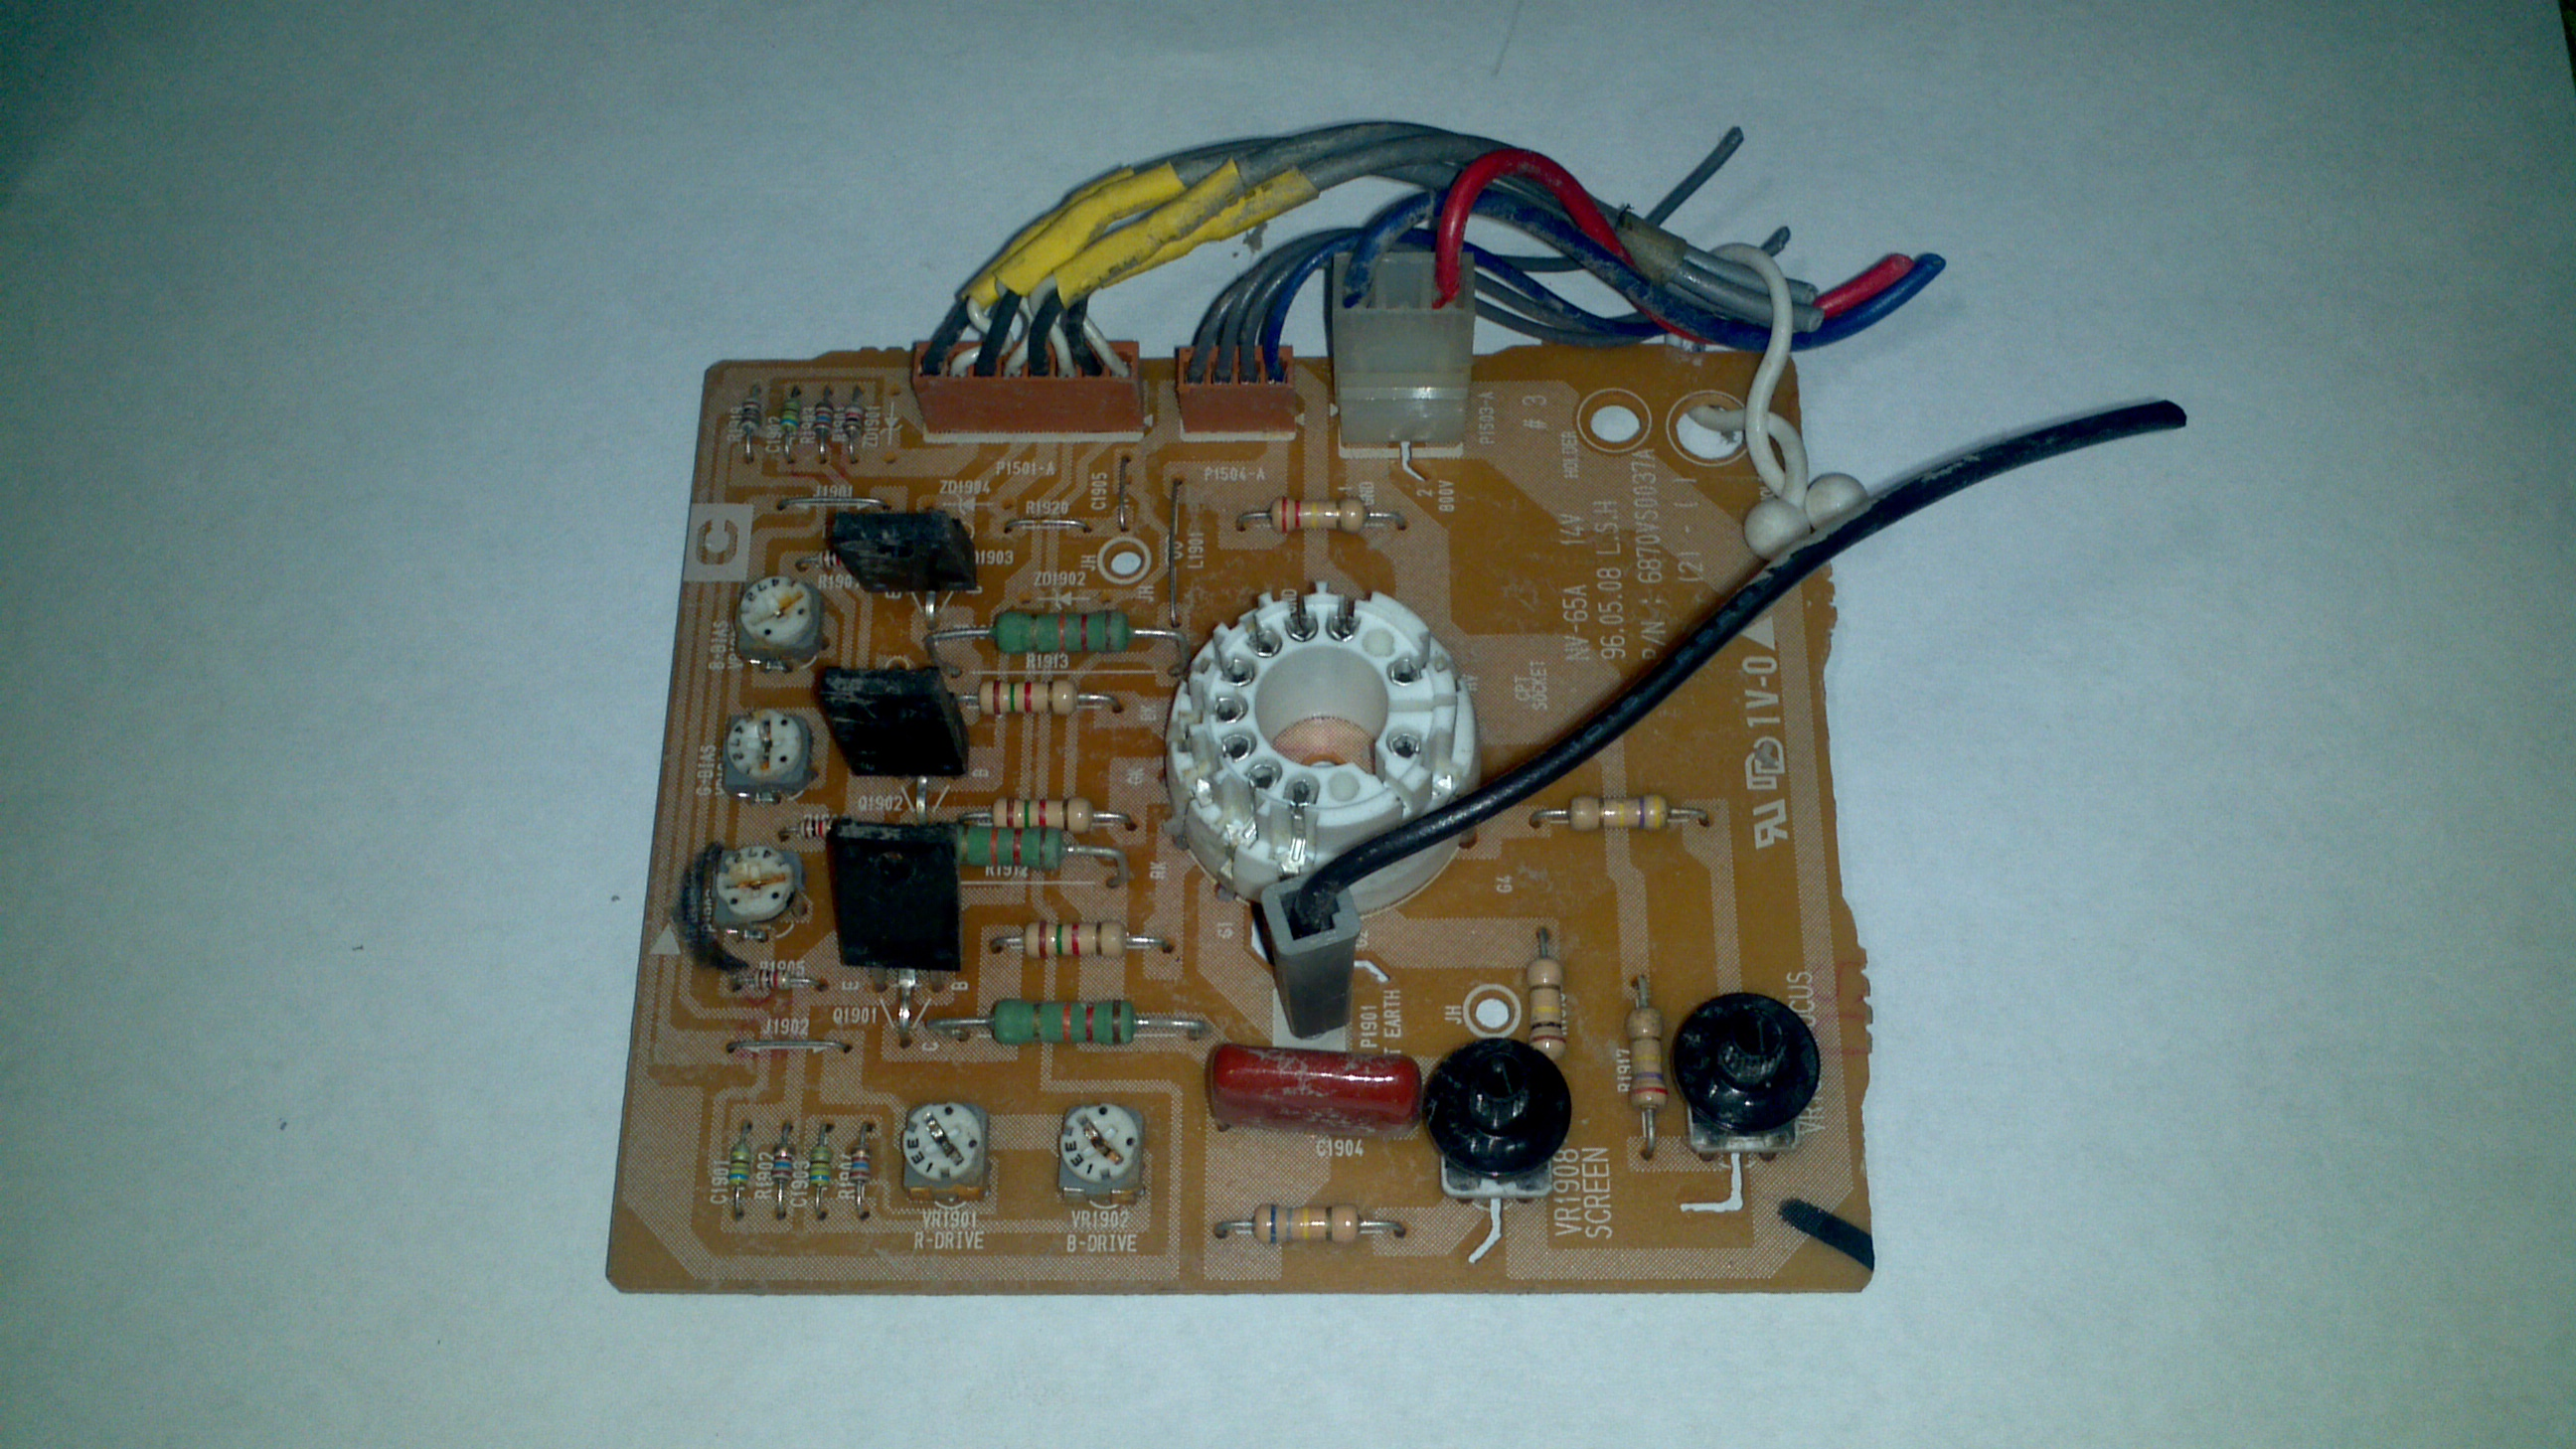 boardsort com buys low grade circuit boards by the pound rh boardsort com